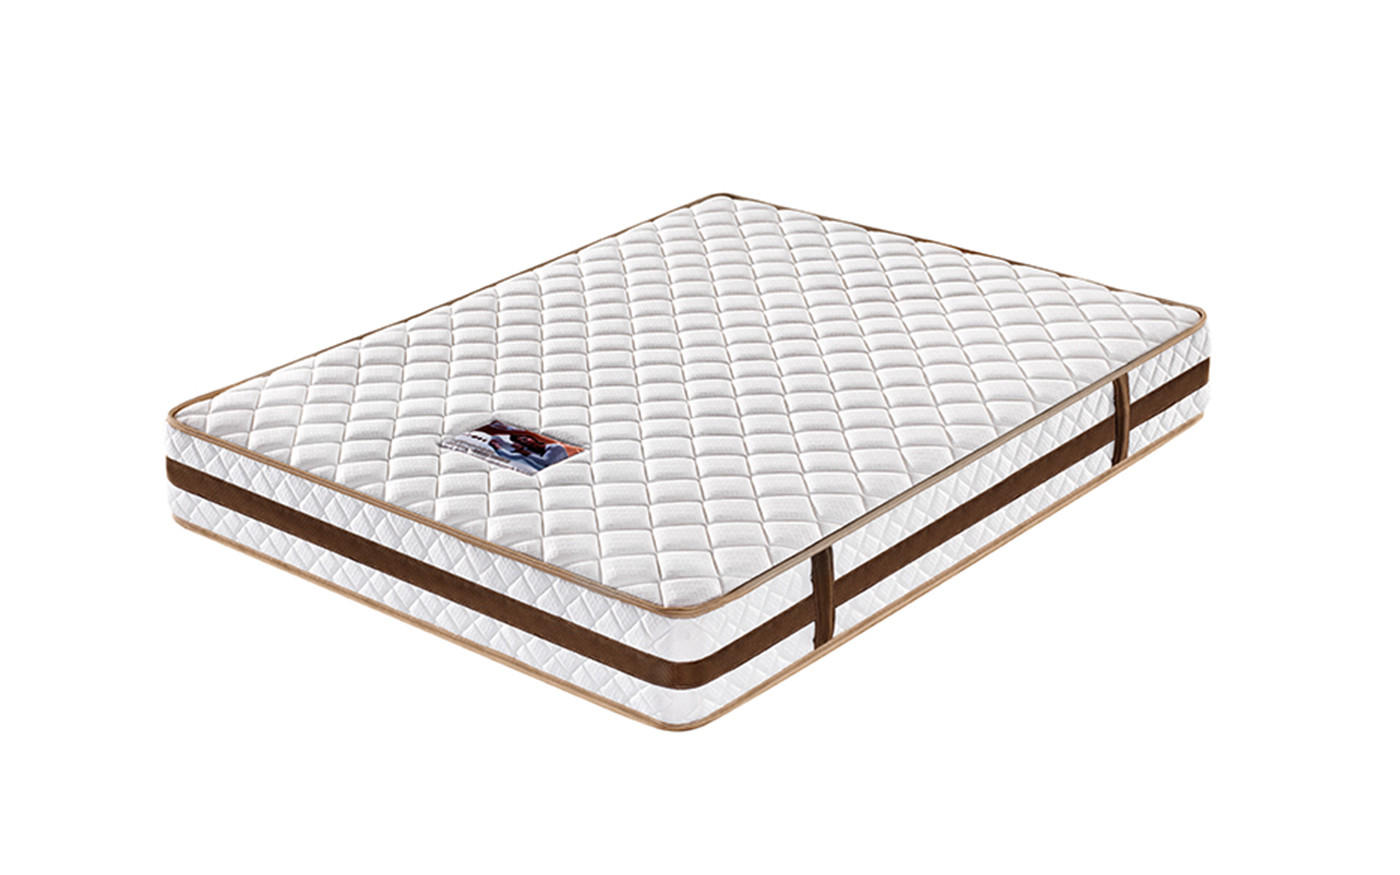 king size pocket sprung memory foam mattress king size chic design at discount Synwin-1